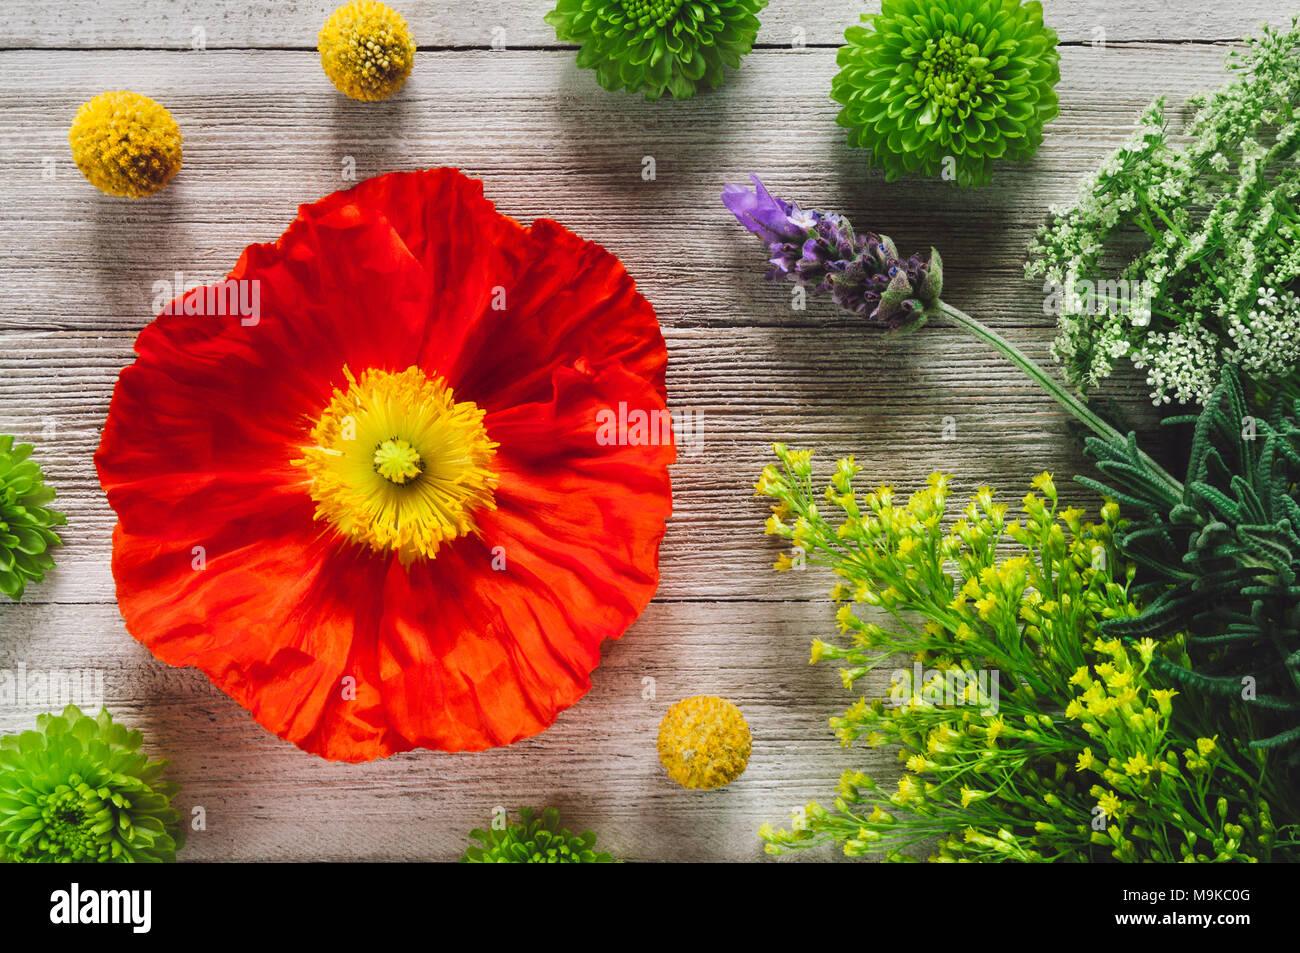 Arranged Flowers on White Table including Poppy, Lavender, Chrysanthemum and Craspedia - Stock Image